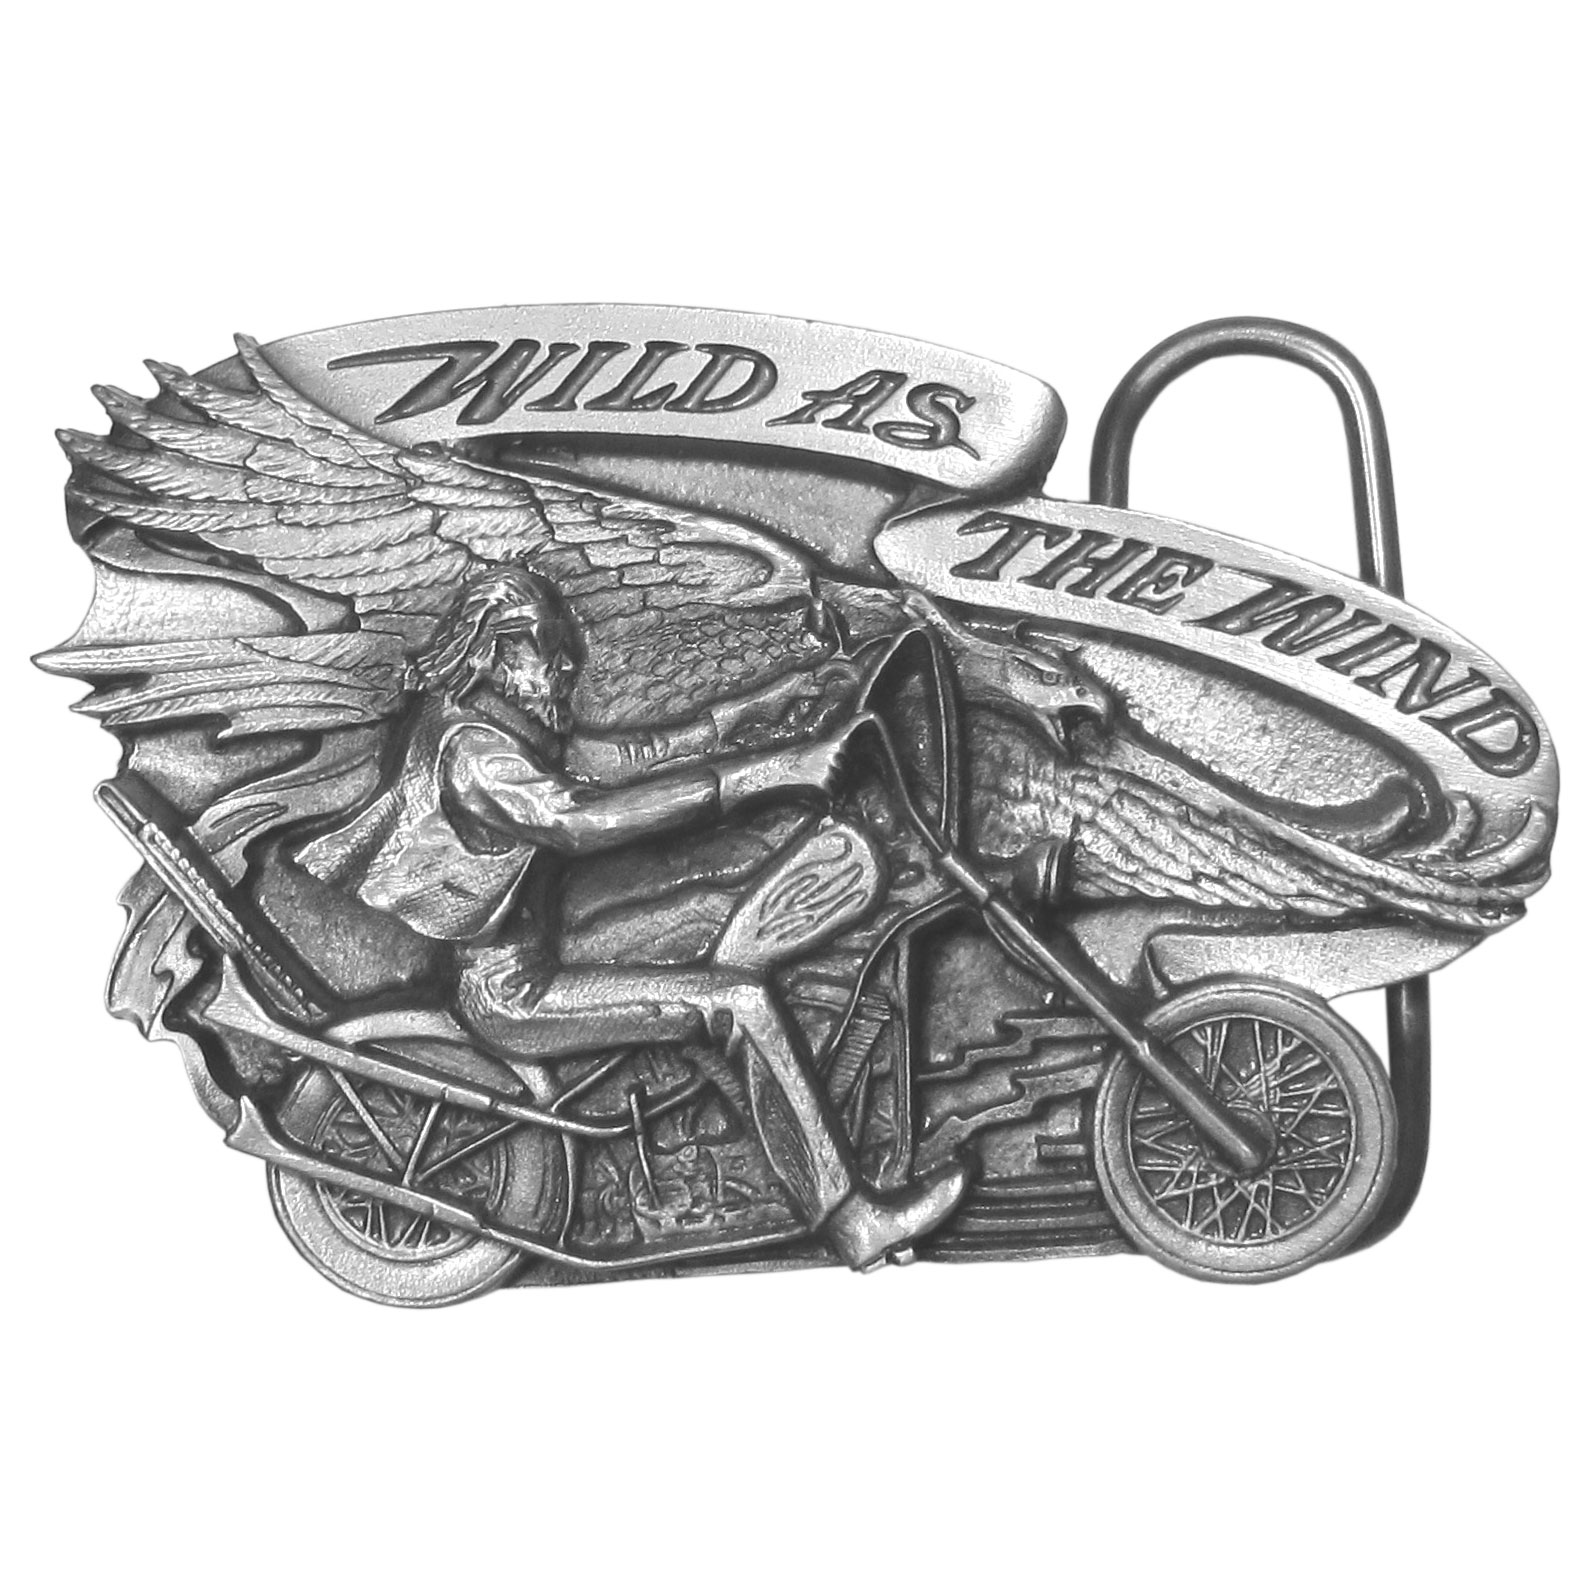 "Wild as the Wind  Antiqued Belt Buckle - ""Want to show your wild side? This unique buckle features a man riding on a motorcycle and a banner with """"Wild As The Wind"""" on it. There is also an eagle soaring through the sky. This exquistely carved buckle is made of fully cast metal with a standard bale that fits up to 2"""" belts. Siskiyou's unique buckle designs often become collectors items and are unequaled with the best craftsmanship."""